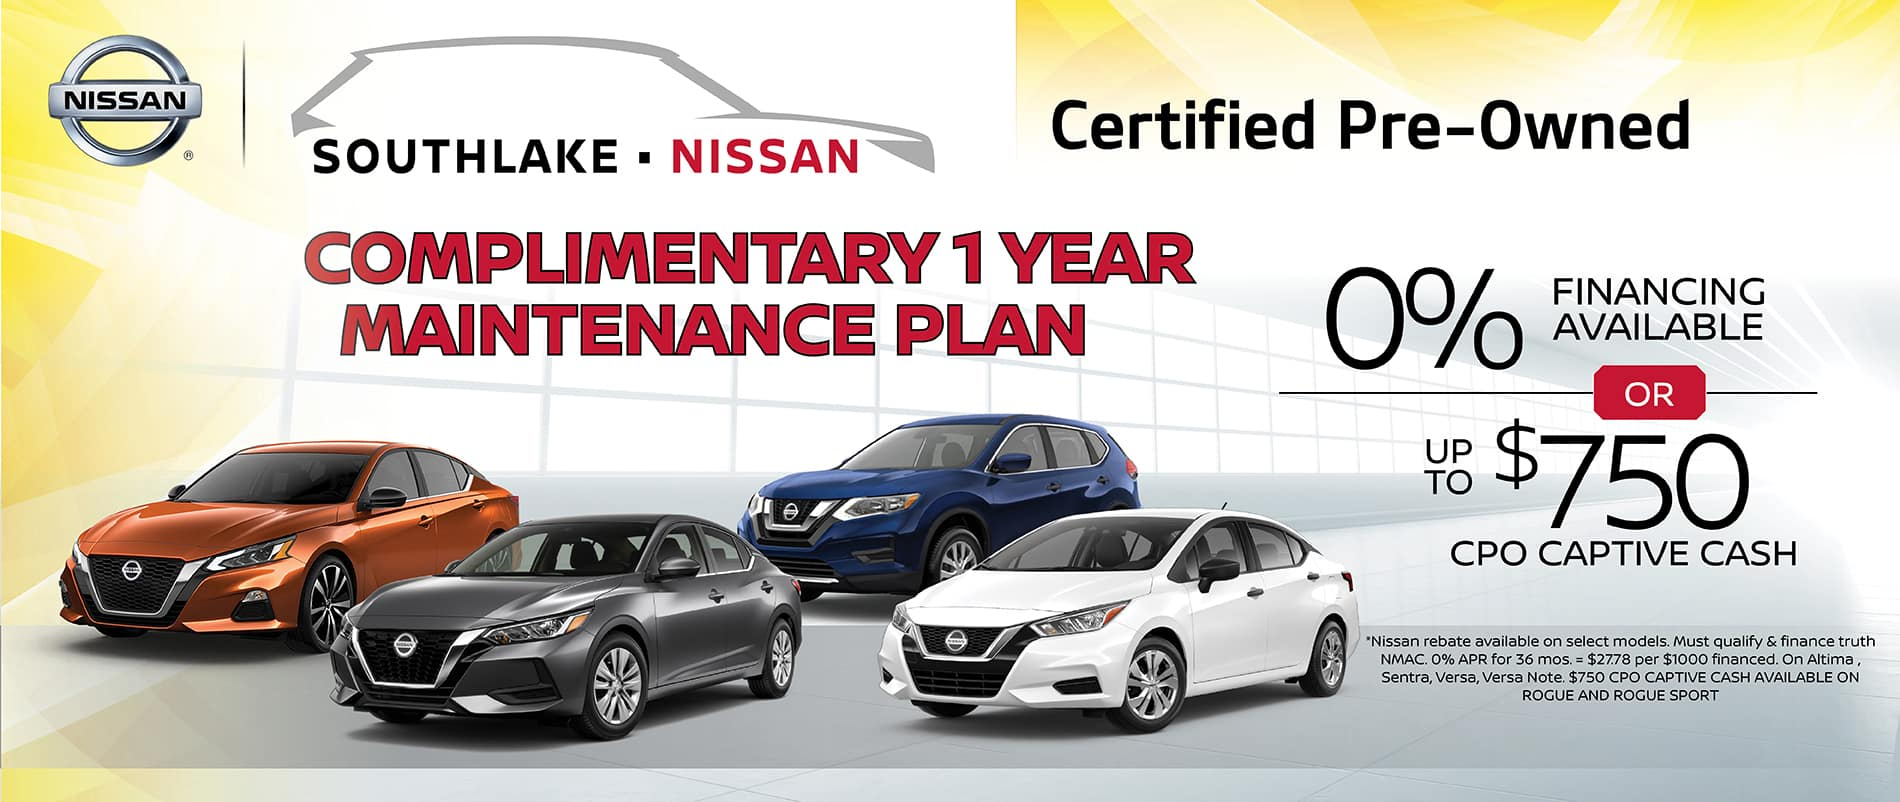 Complimentary 1 Year Maintenance Plan